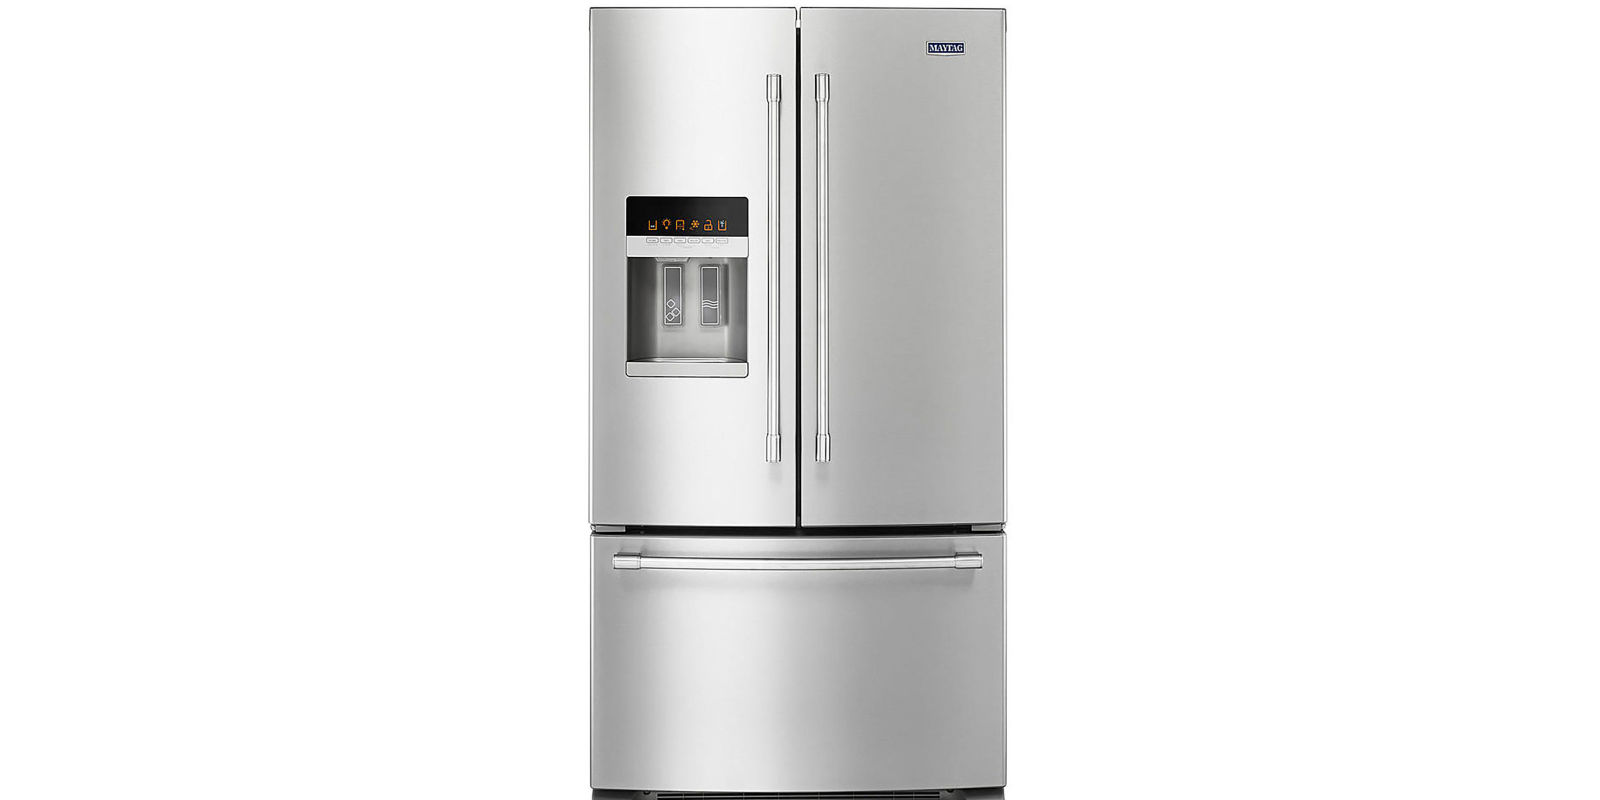 20 best refrigerators reviews and refrigerator tests refrigerator reviews may 31 2017 share maytag french door refrigerator rubansaba